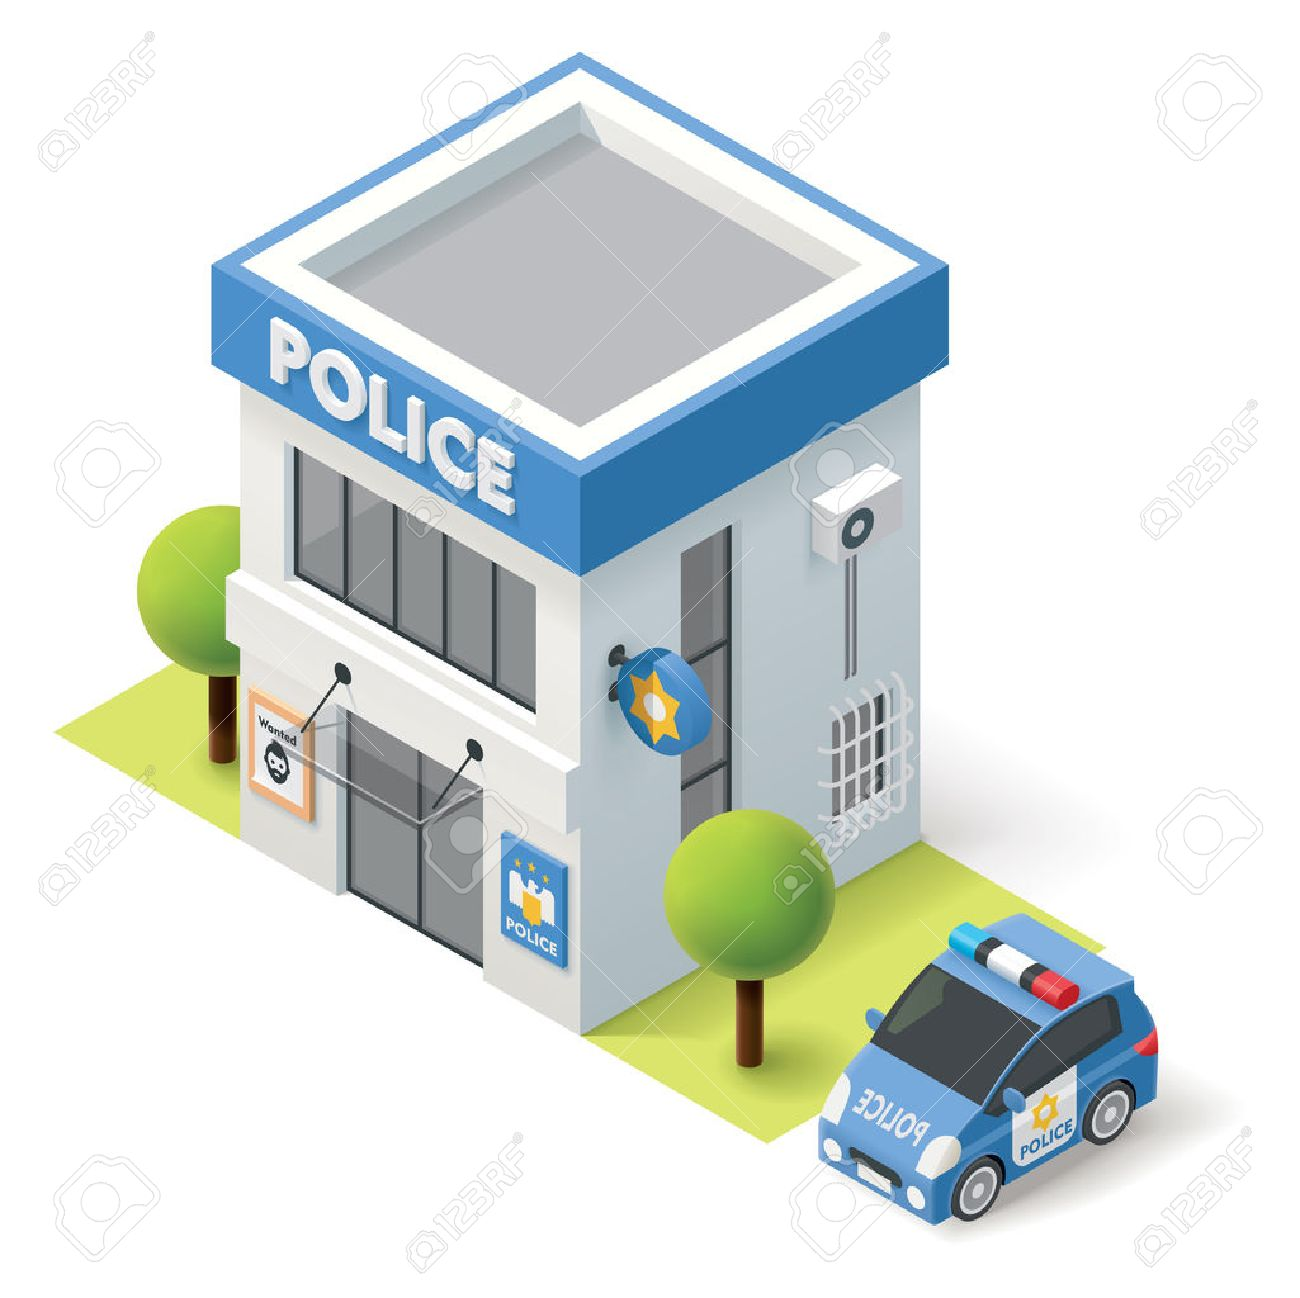 Police station clipart  Vector Isometric Police Department Building Icon Royalty Free ...